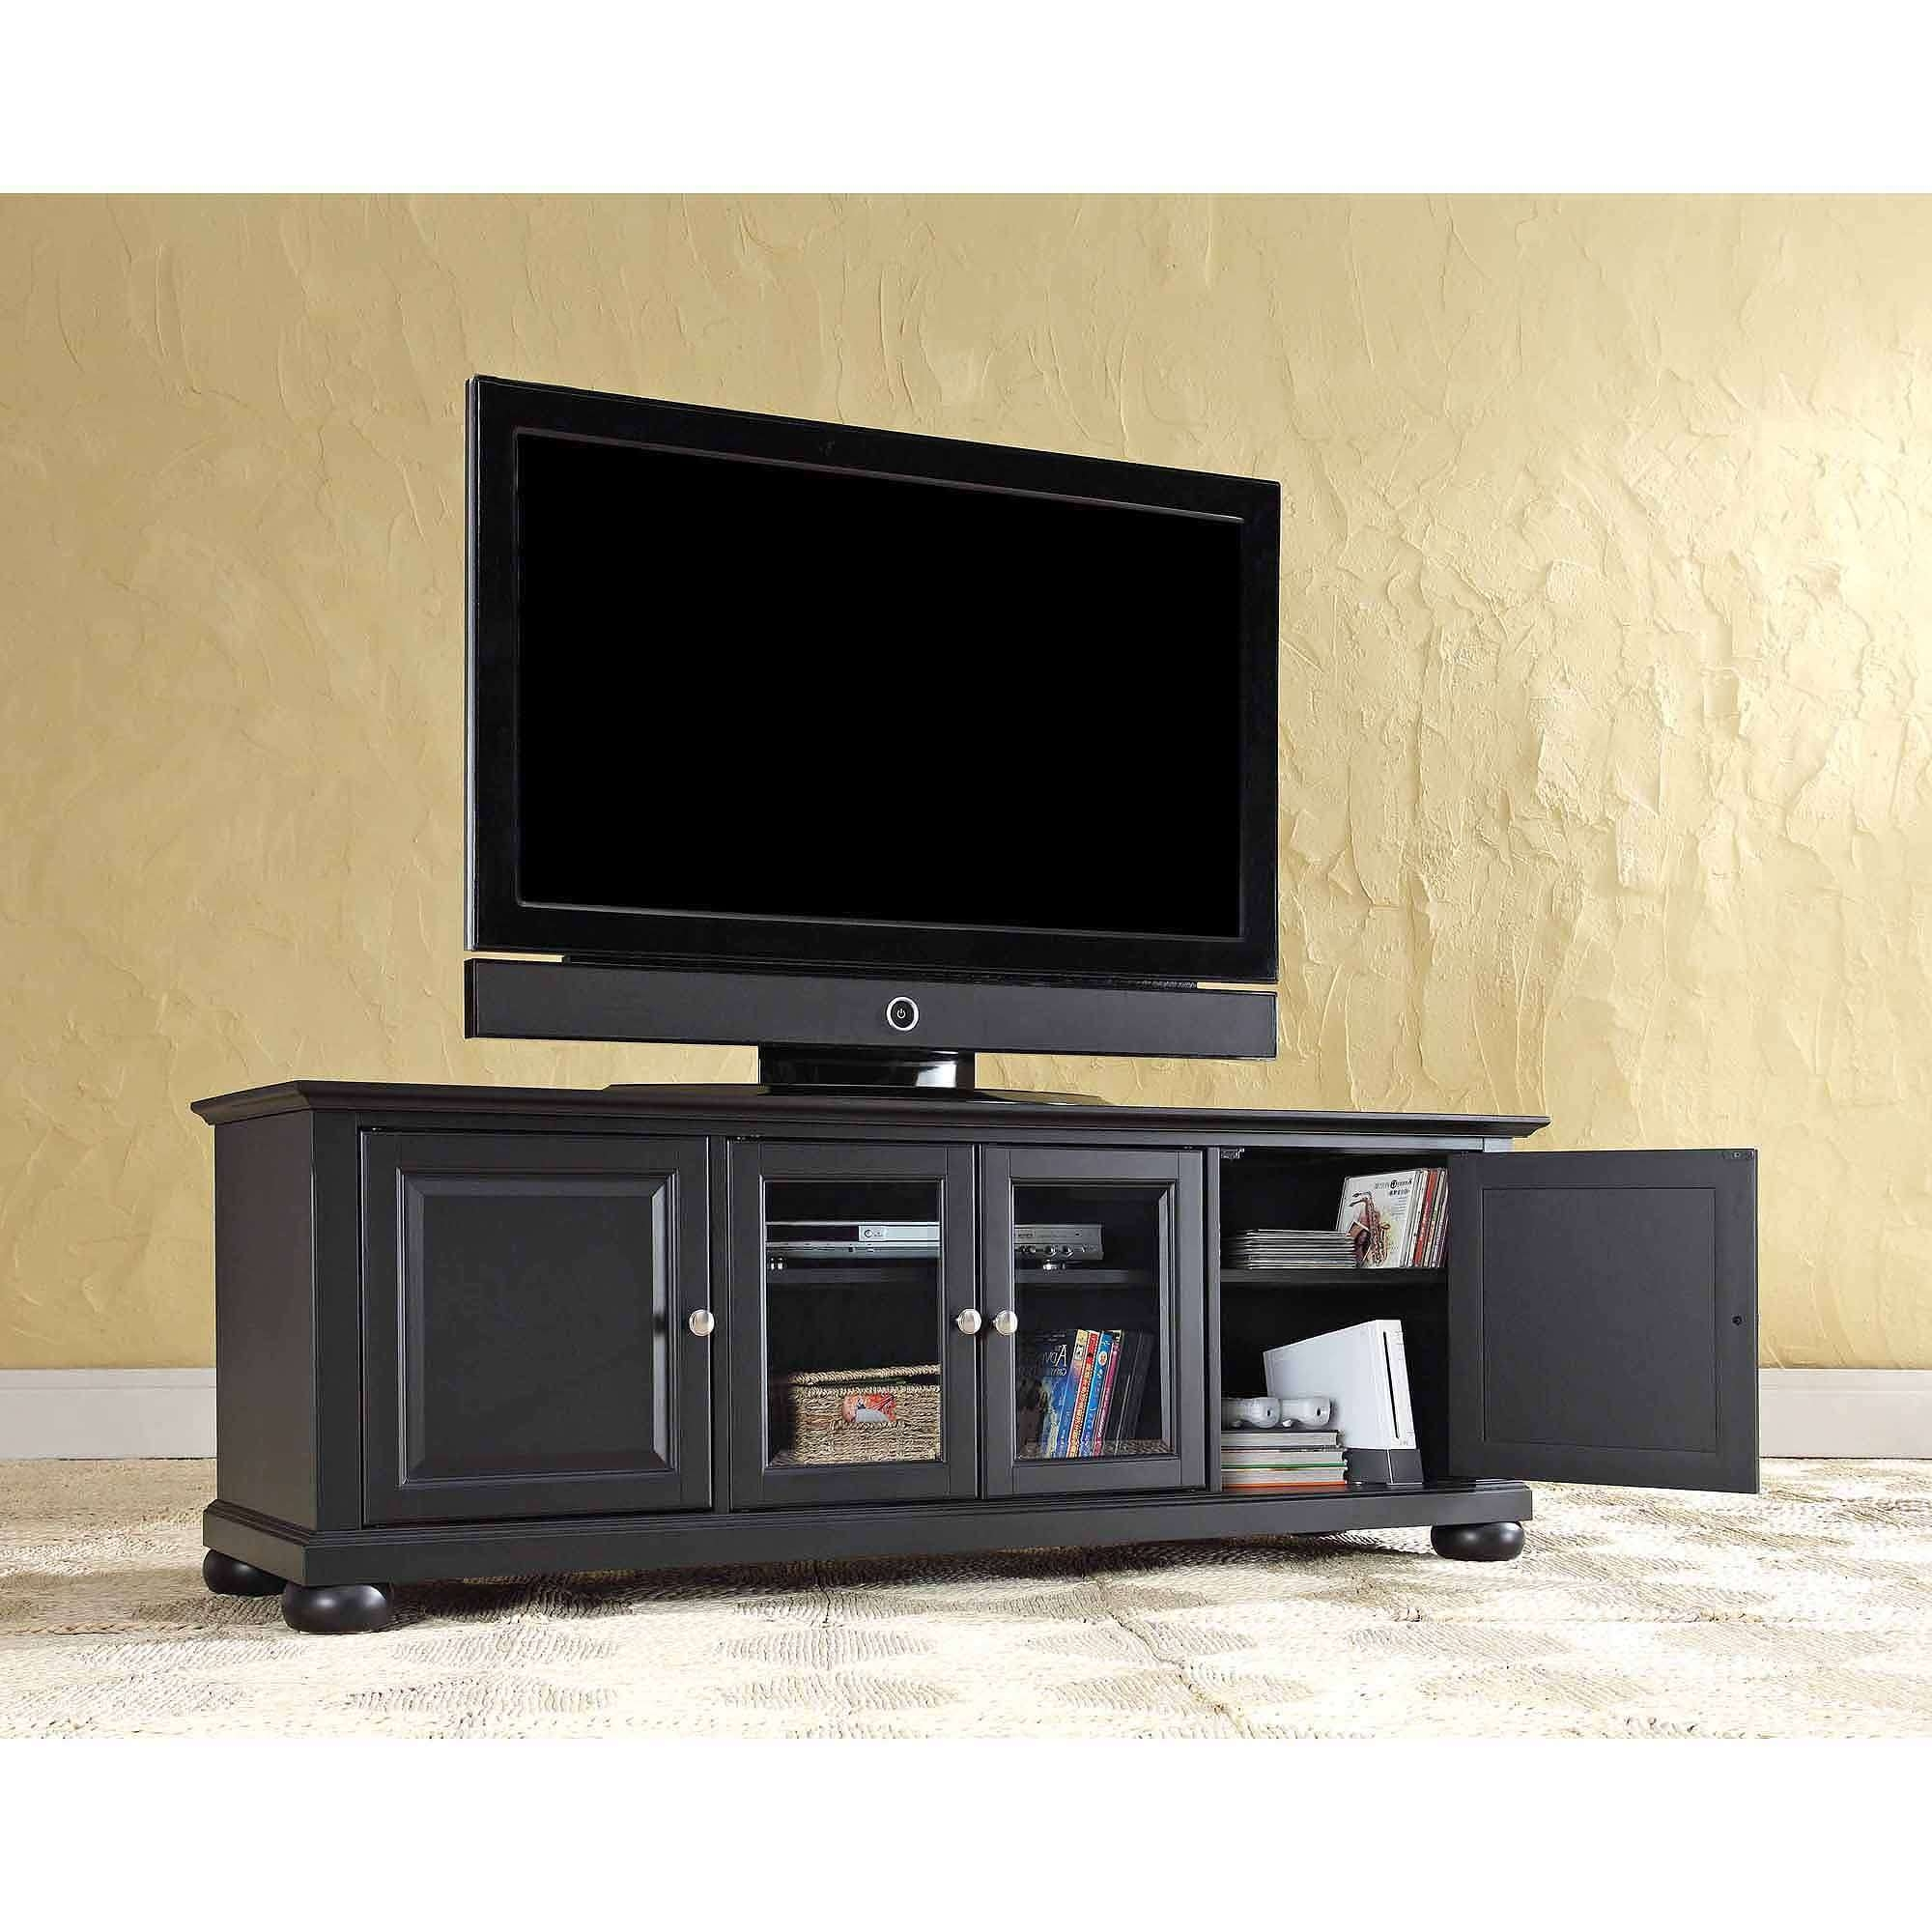 Inspirational Tv Stands For 60 Inch Tv 22 About Remodel Modern Intended For Modern 60 Inch Tv Stands (View 15 of 20)